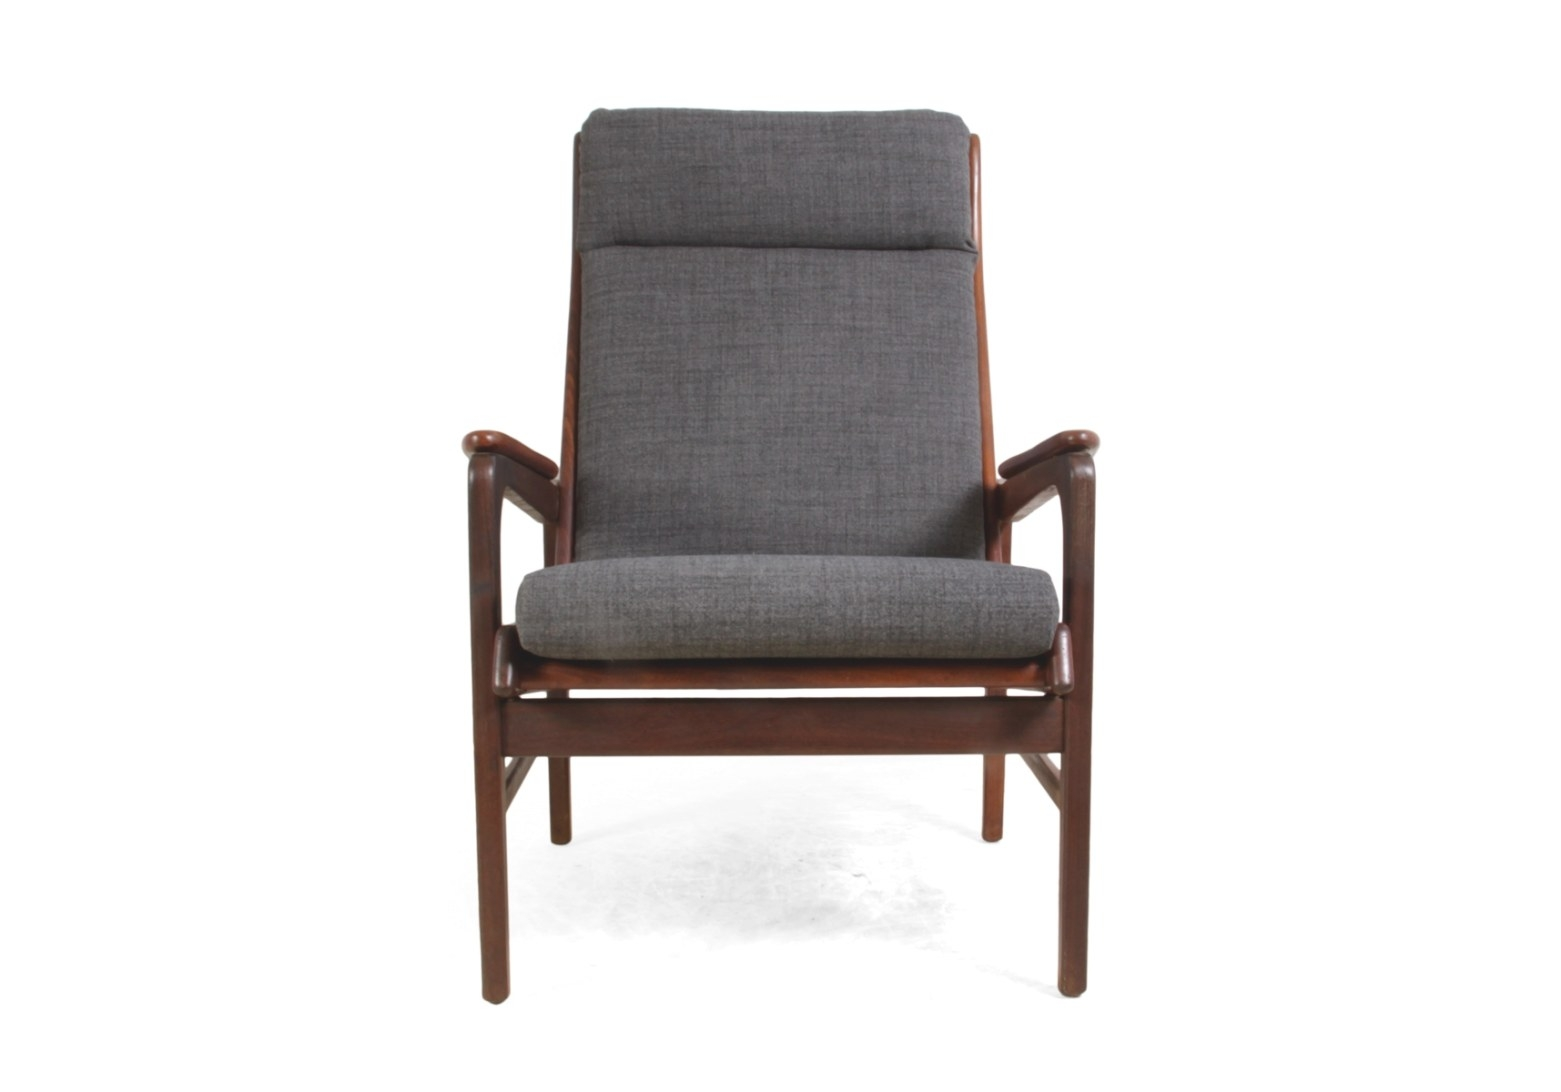 Mid Century Teak Lounge Chair | The Furniture Rooms regarding Mid Century Lounge Chair